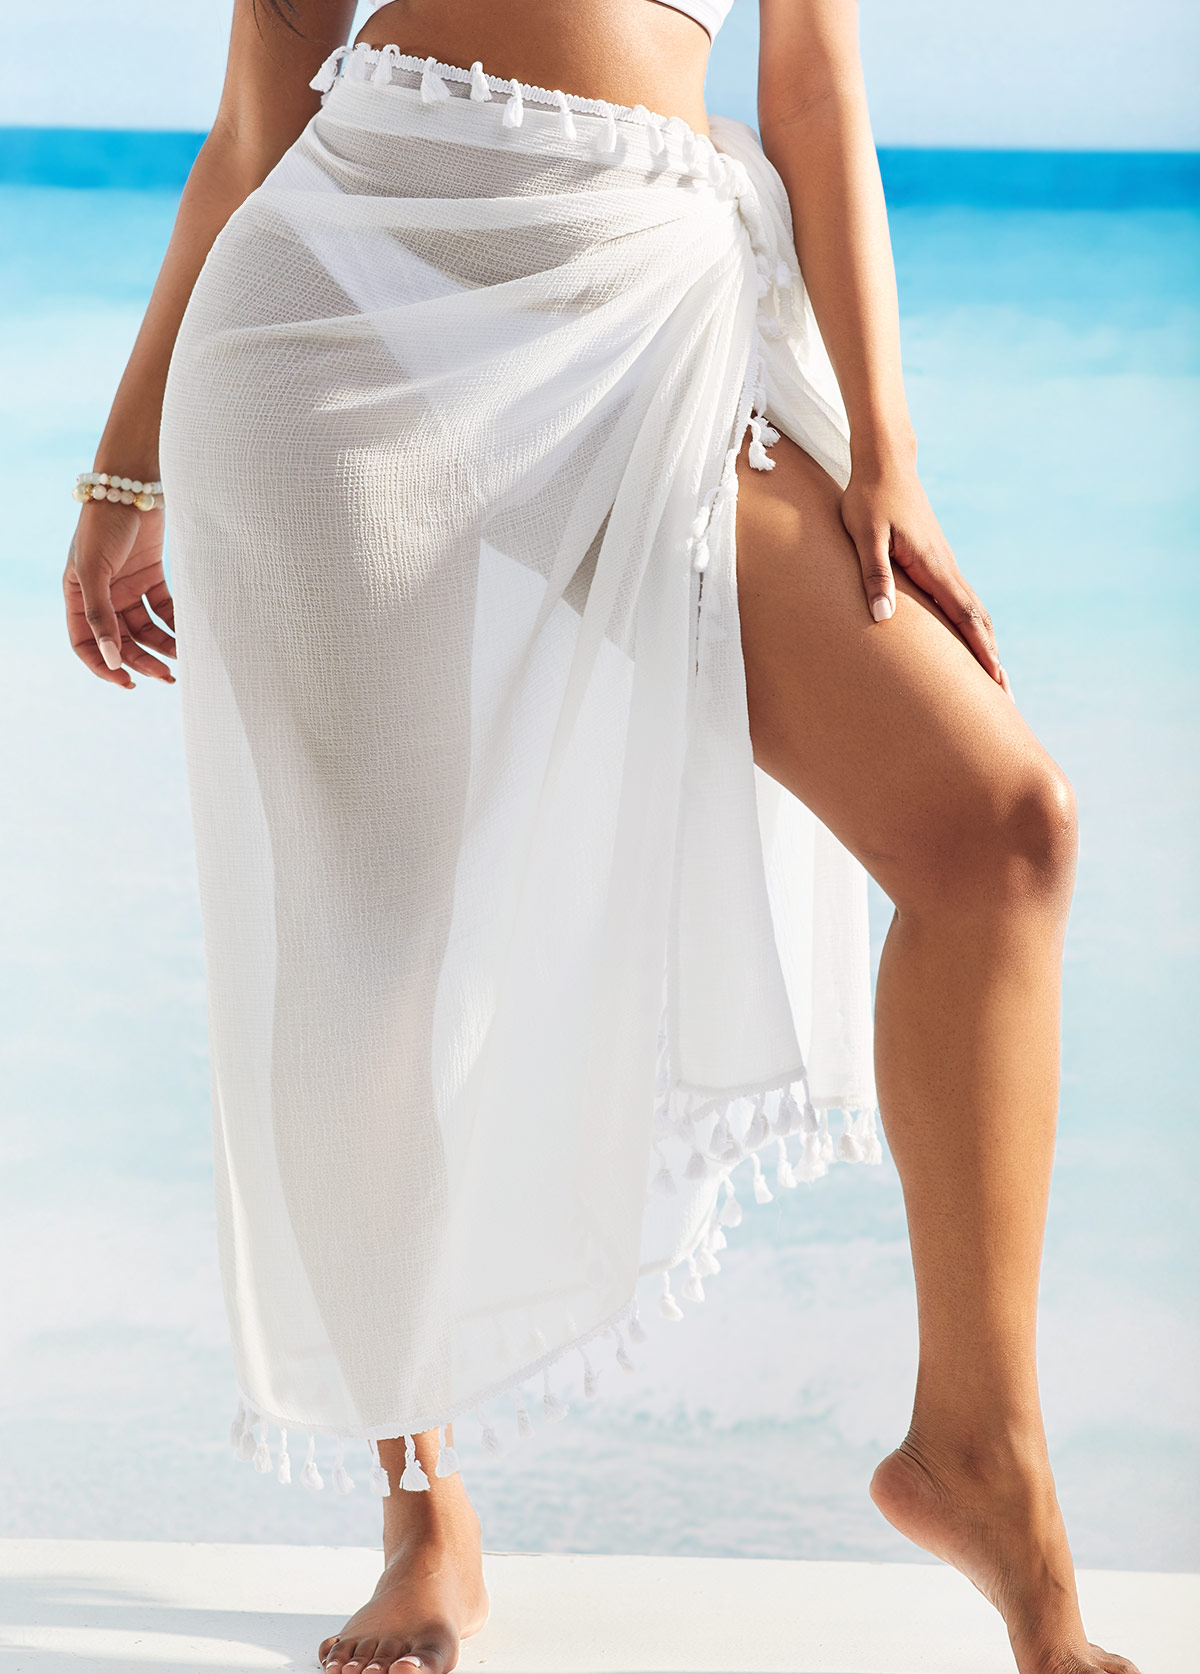 Tassel Detail White Multi Wear Cover Up